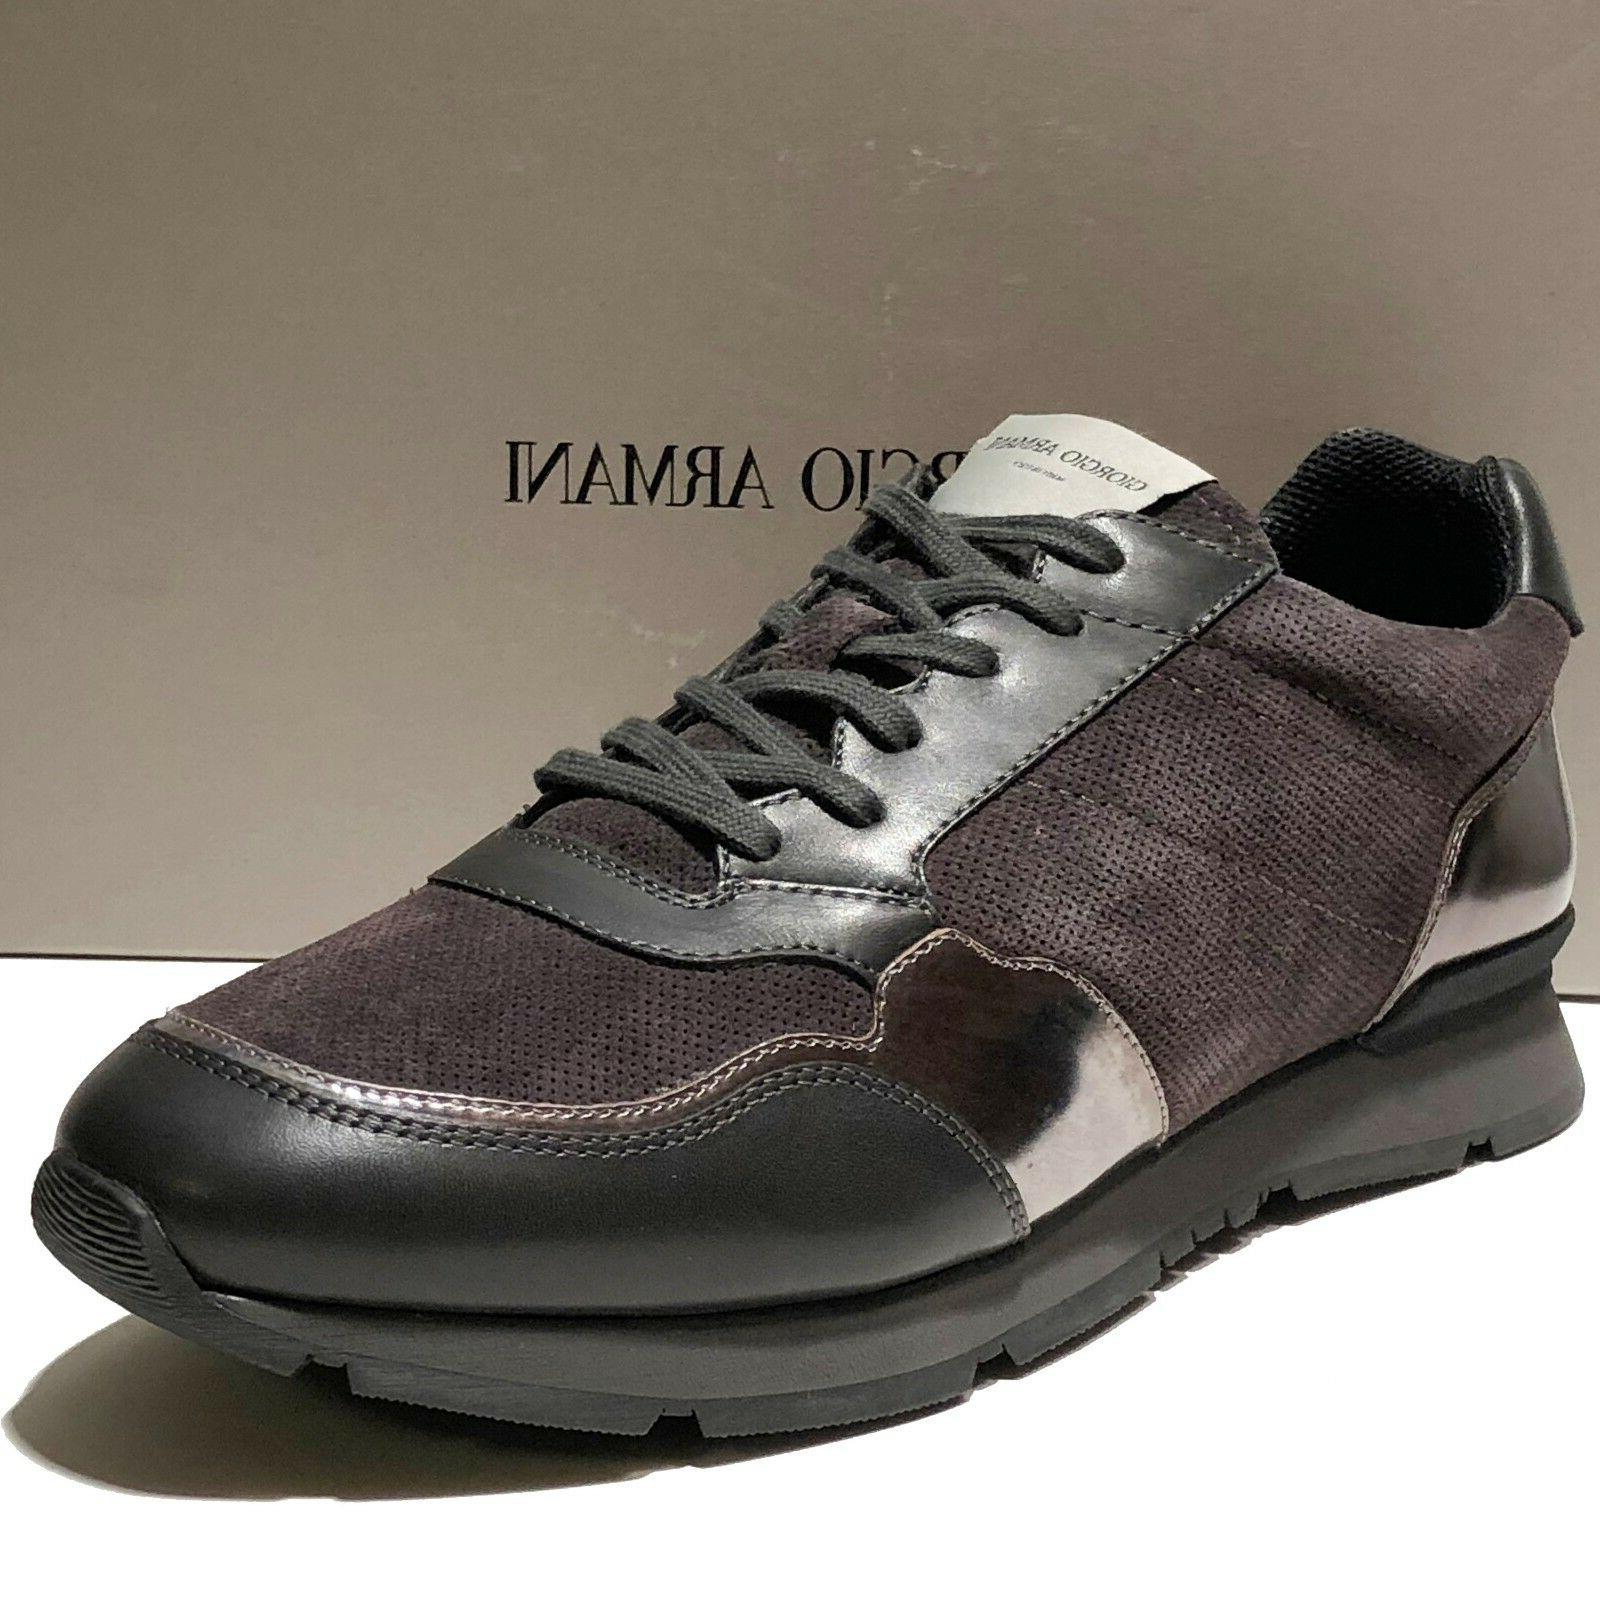 Giorgio Armani Italy Black Leather Fashion SNEAKERS Men's Sh